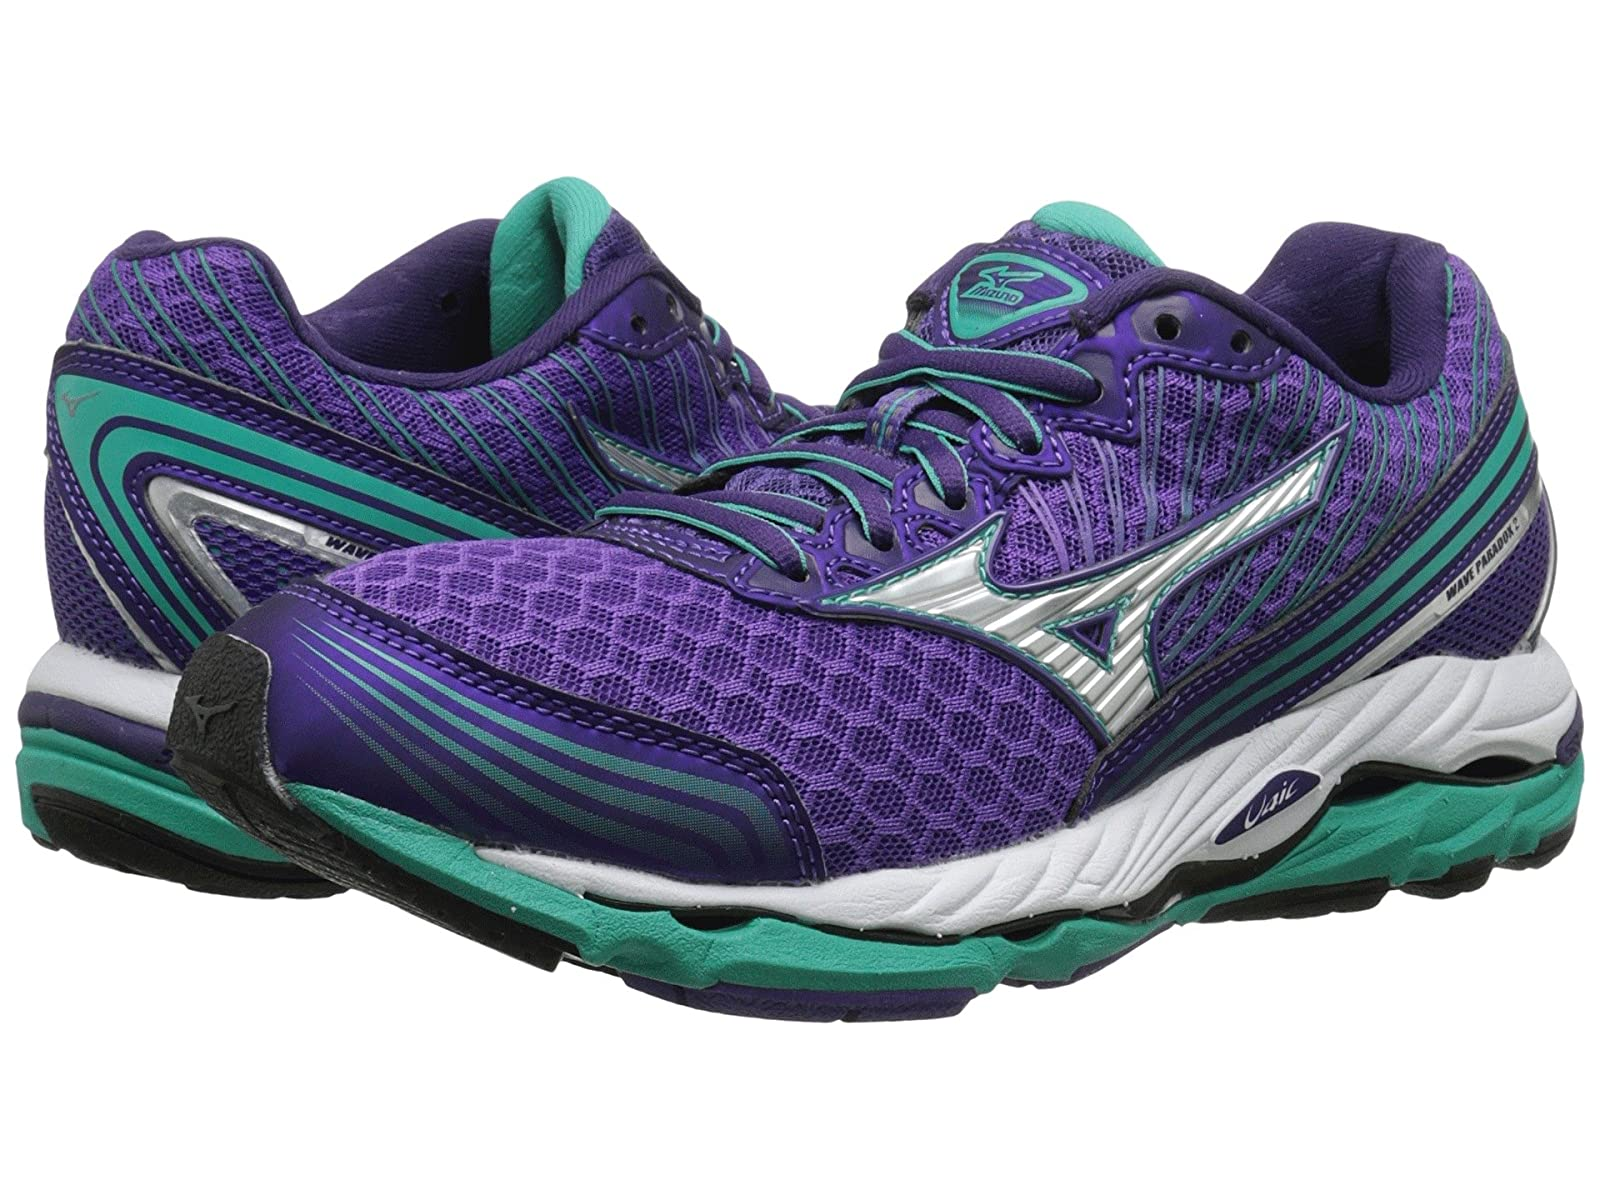 Mizuno Wave Paradox 2Cheap and distinctive eye-catching shoes